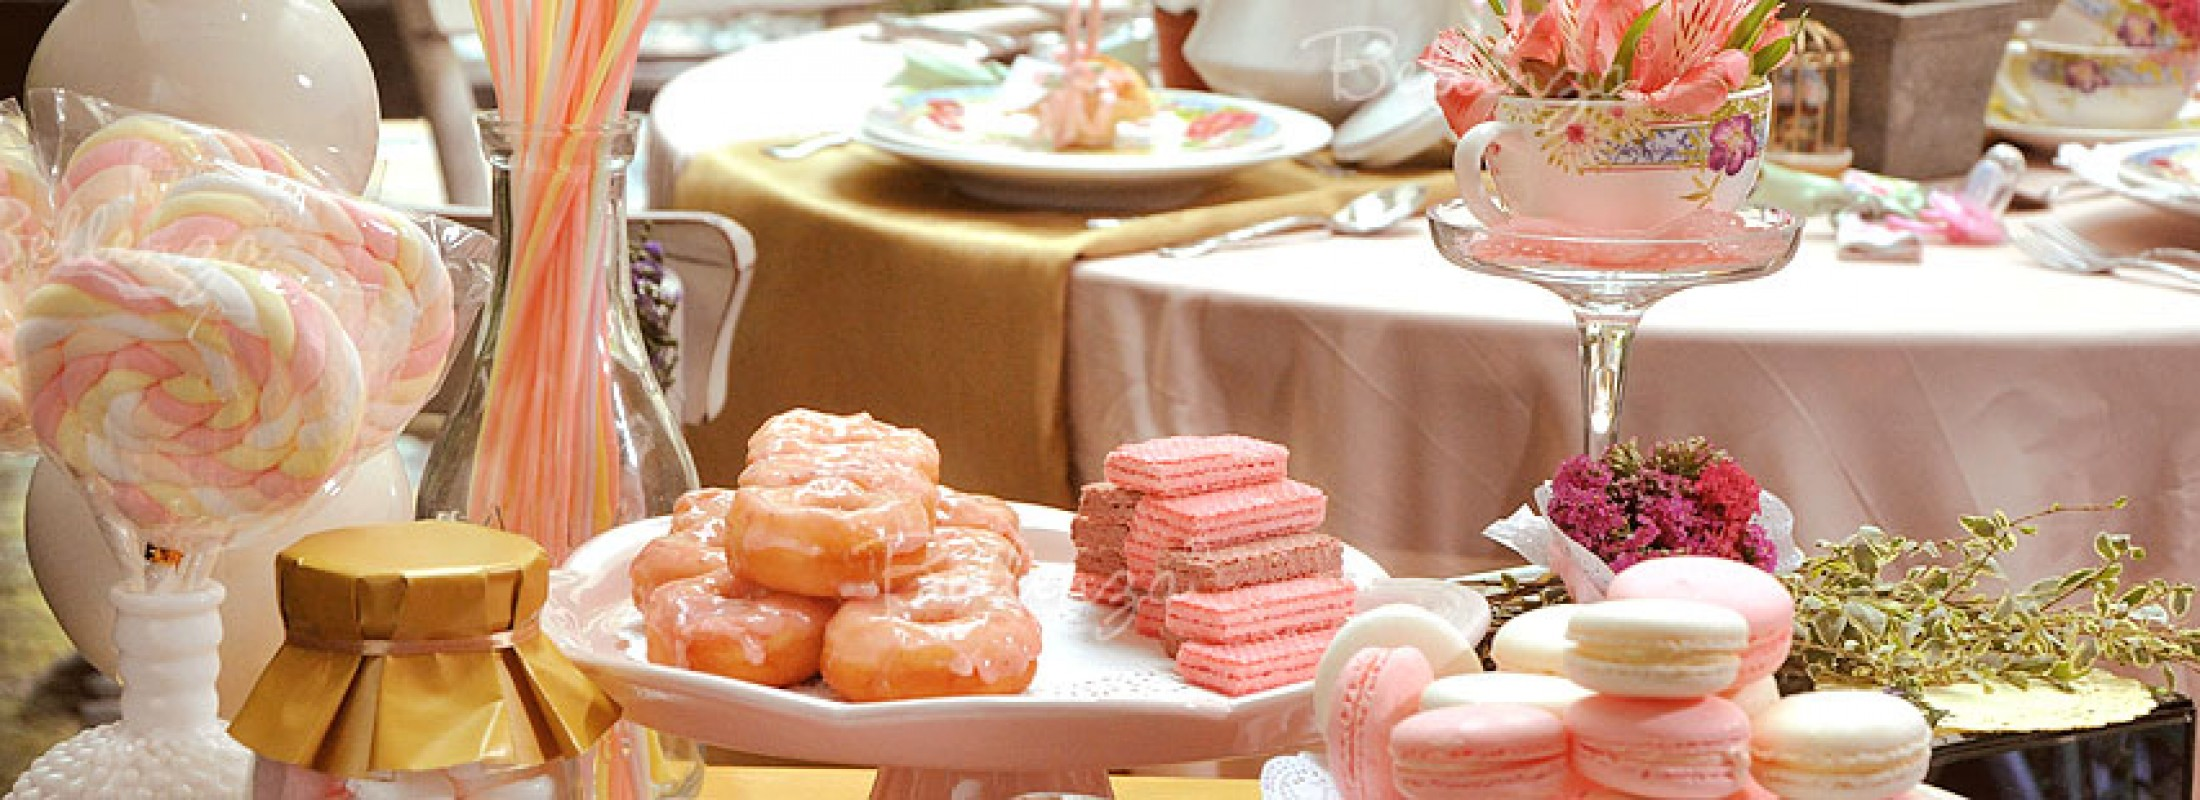 Oh, Sweet Baby! A Dessert Table for a Summer Baby Shower!